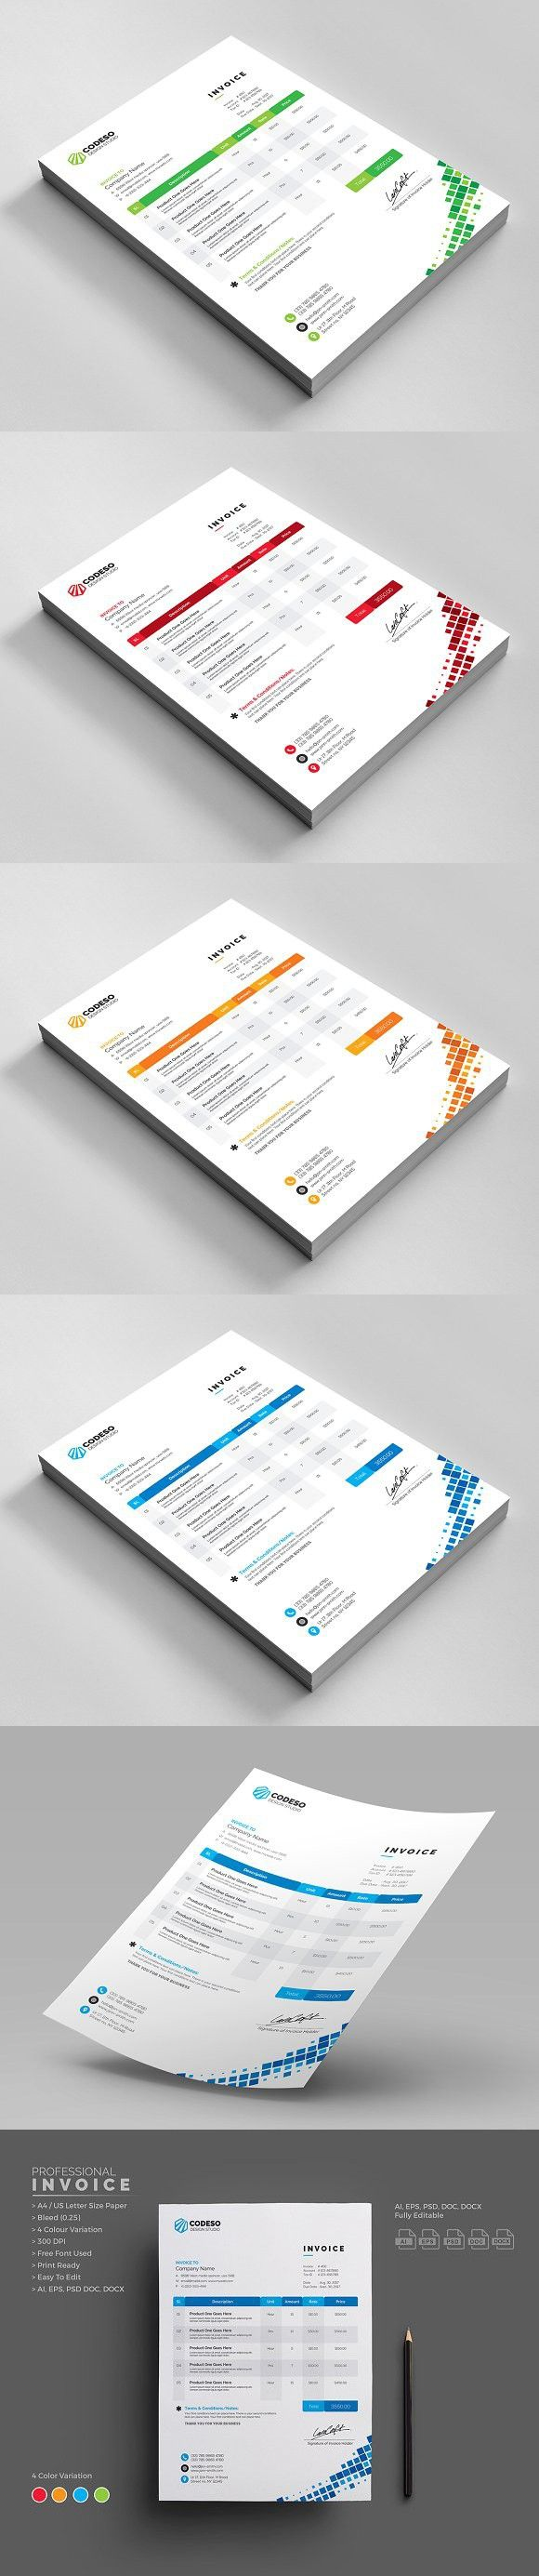 Business Invoice. Stationery Templates